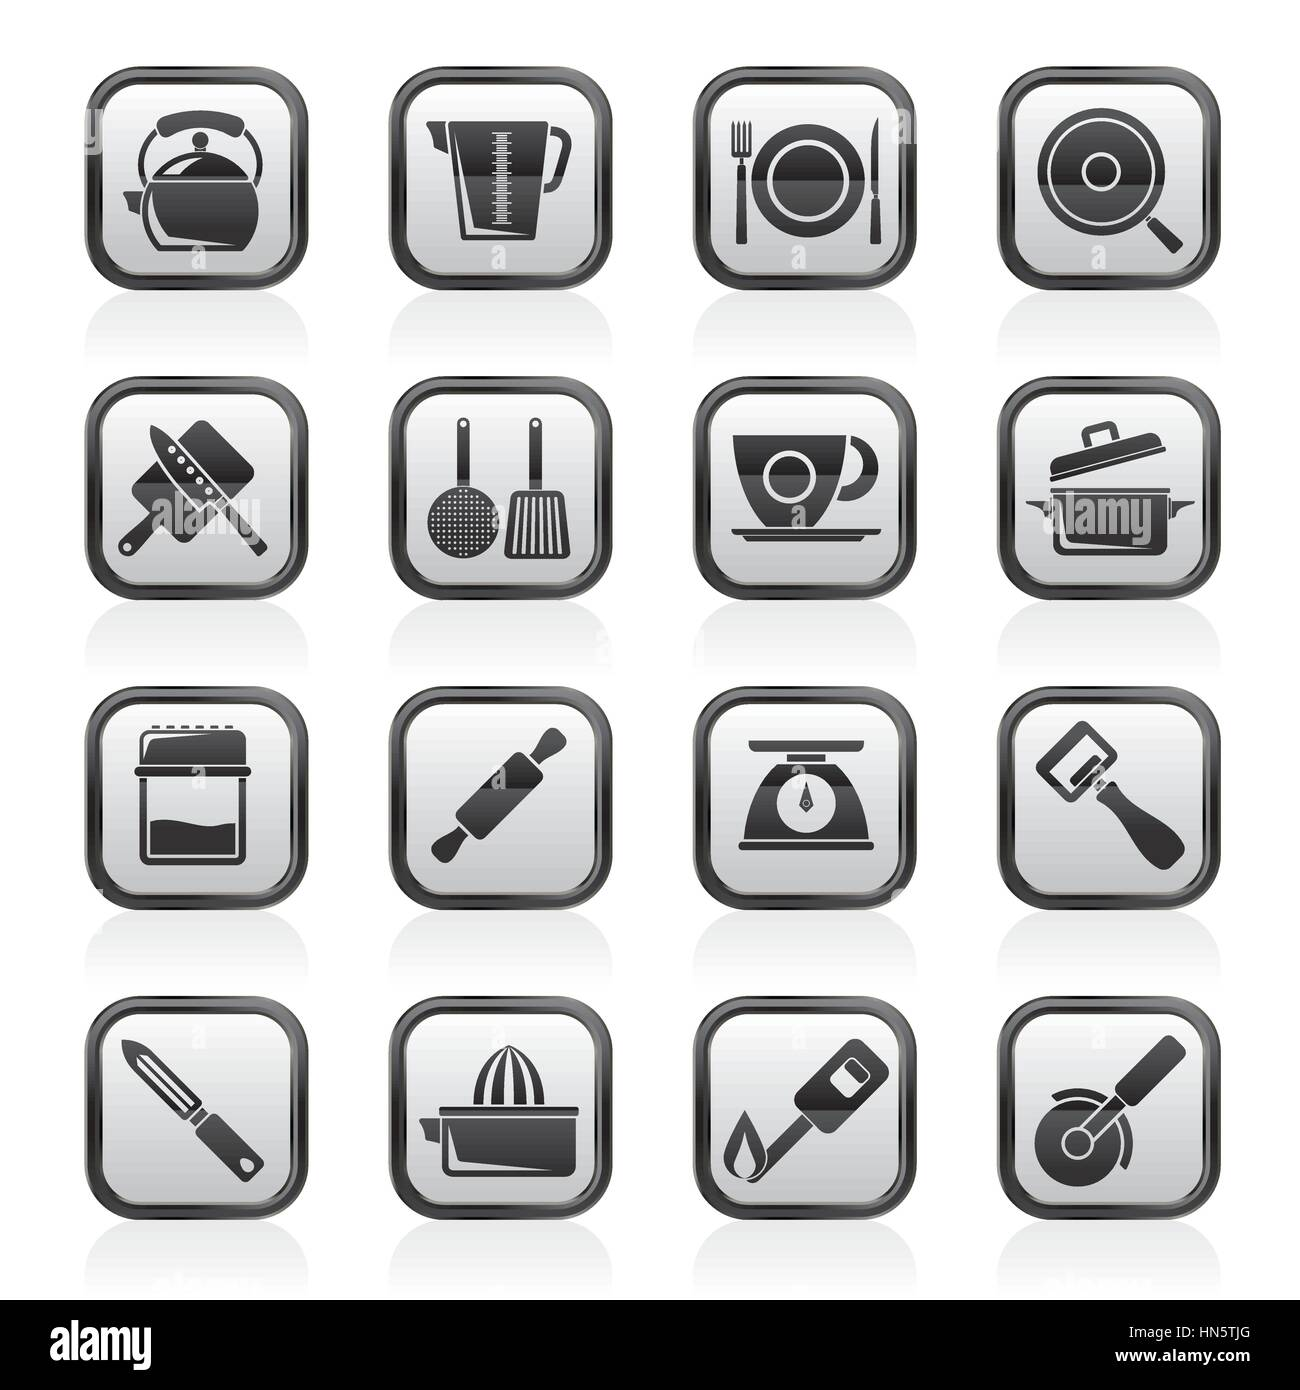 kitchen gadgets and equipment icons - Stock Image